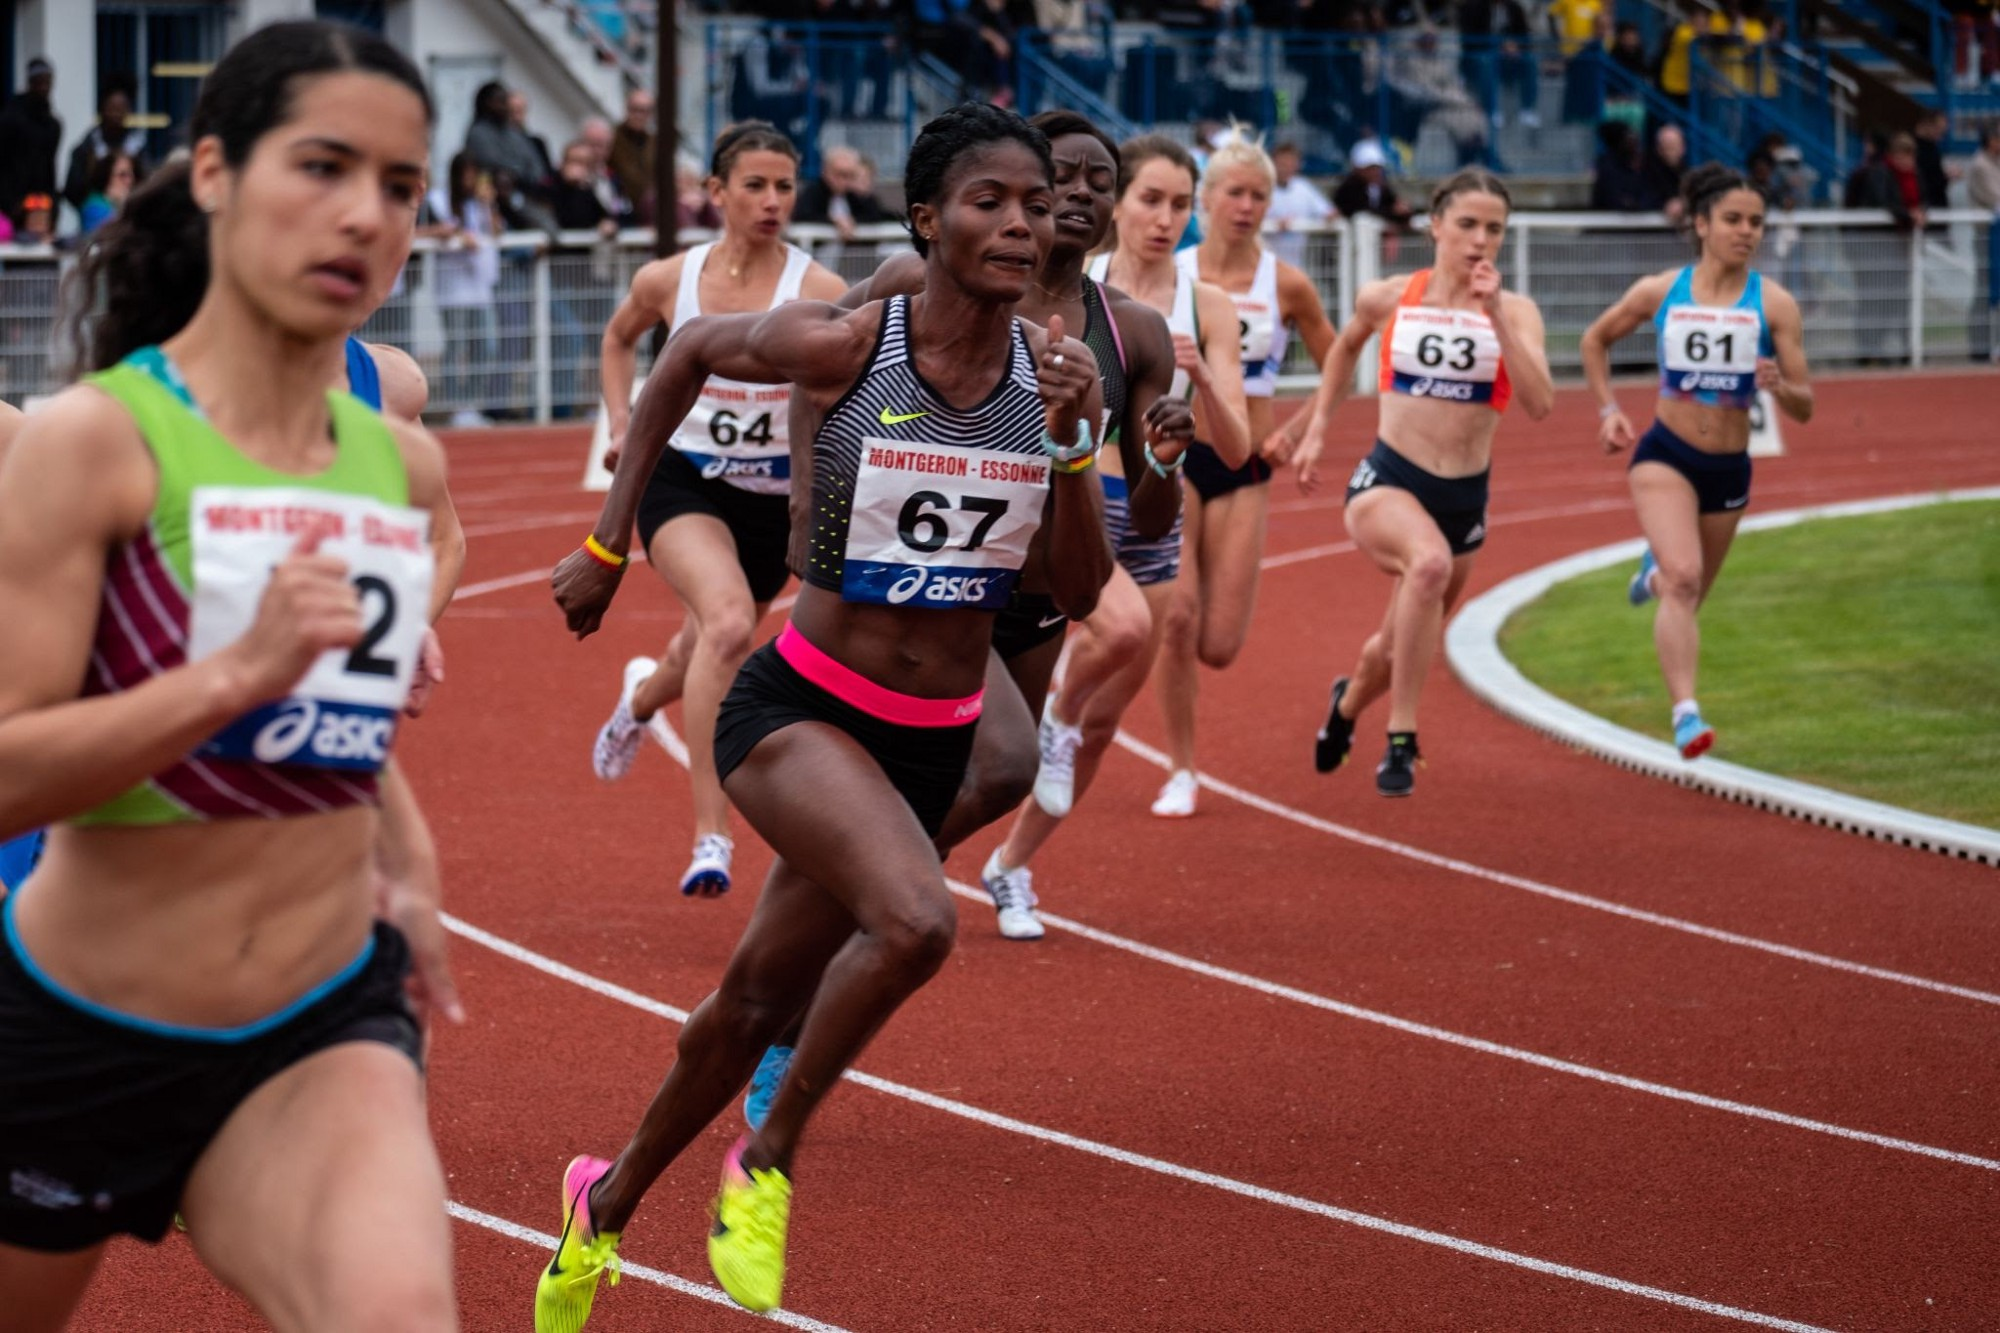 Female runners in a track competition running around a curve in the track.